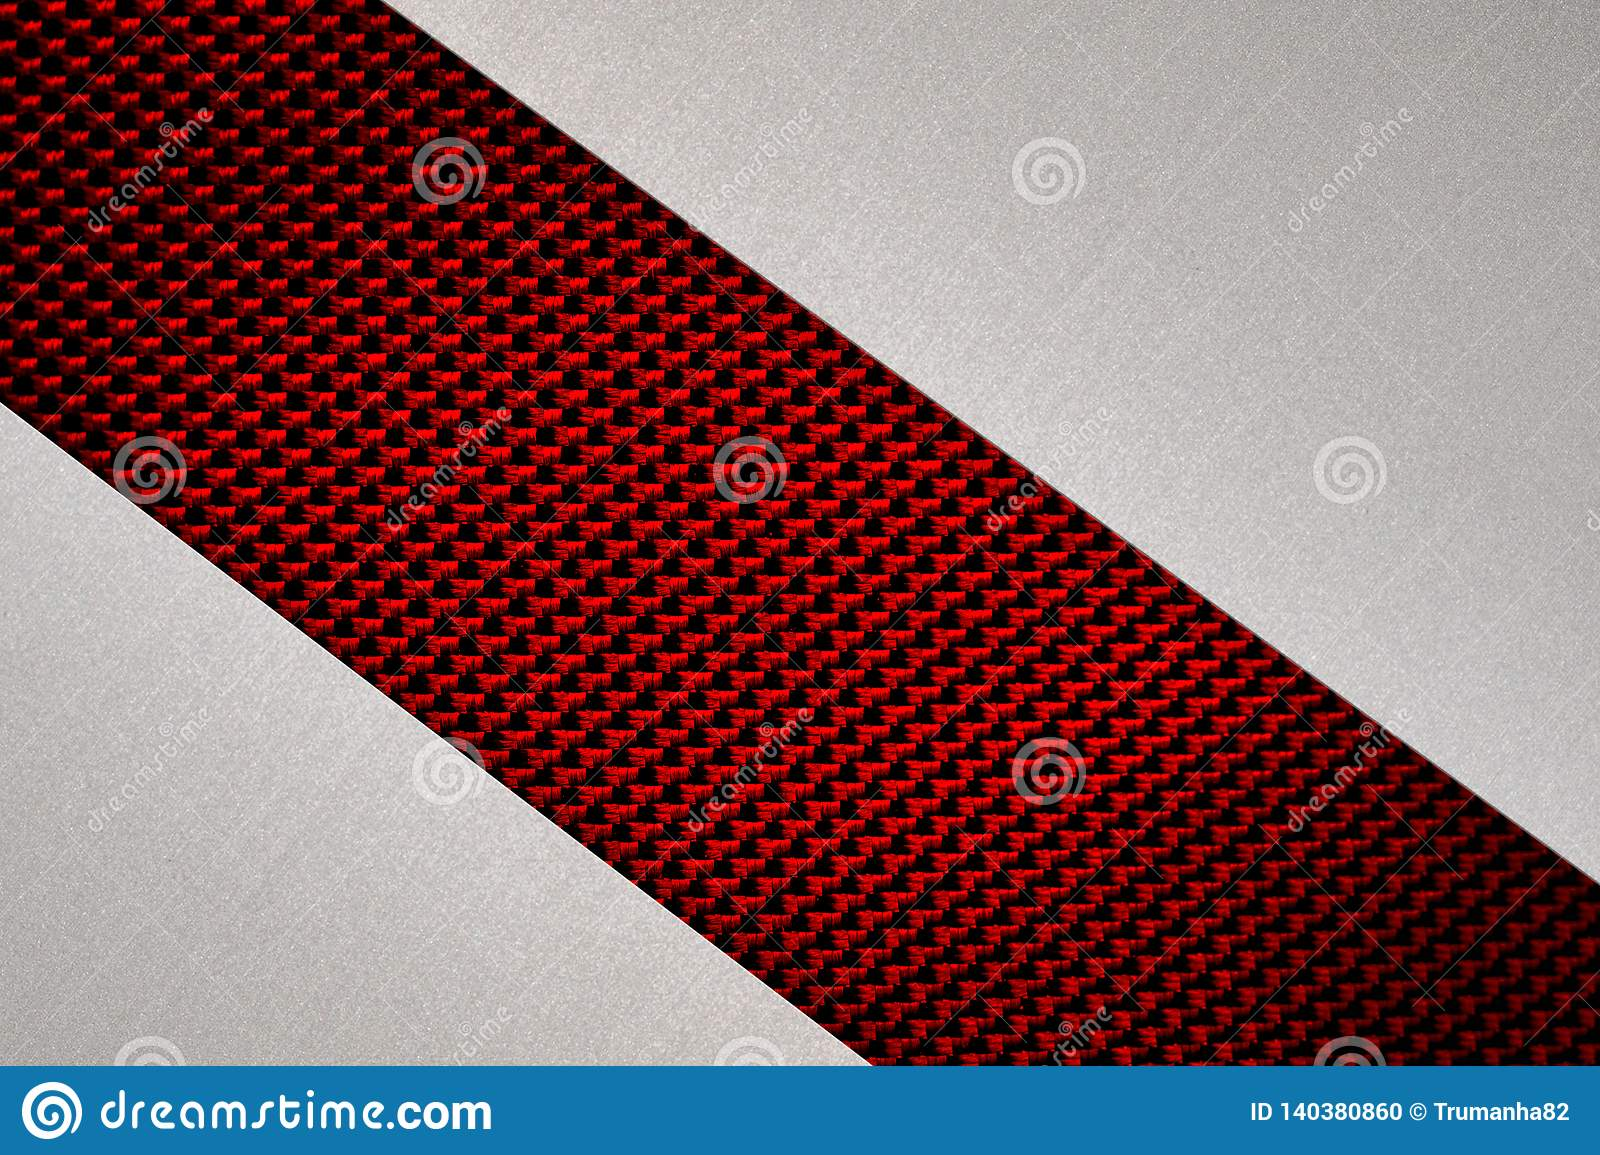 Abstract Gray Brushed Metal on Red Fibers Texture Background